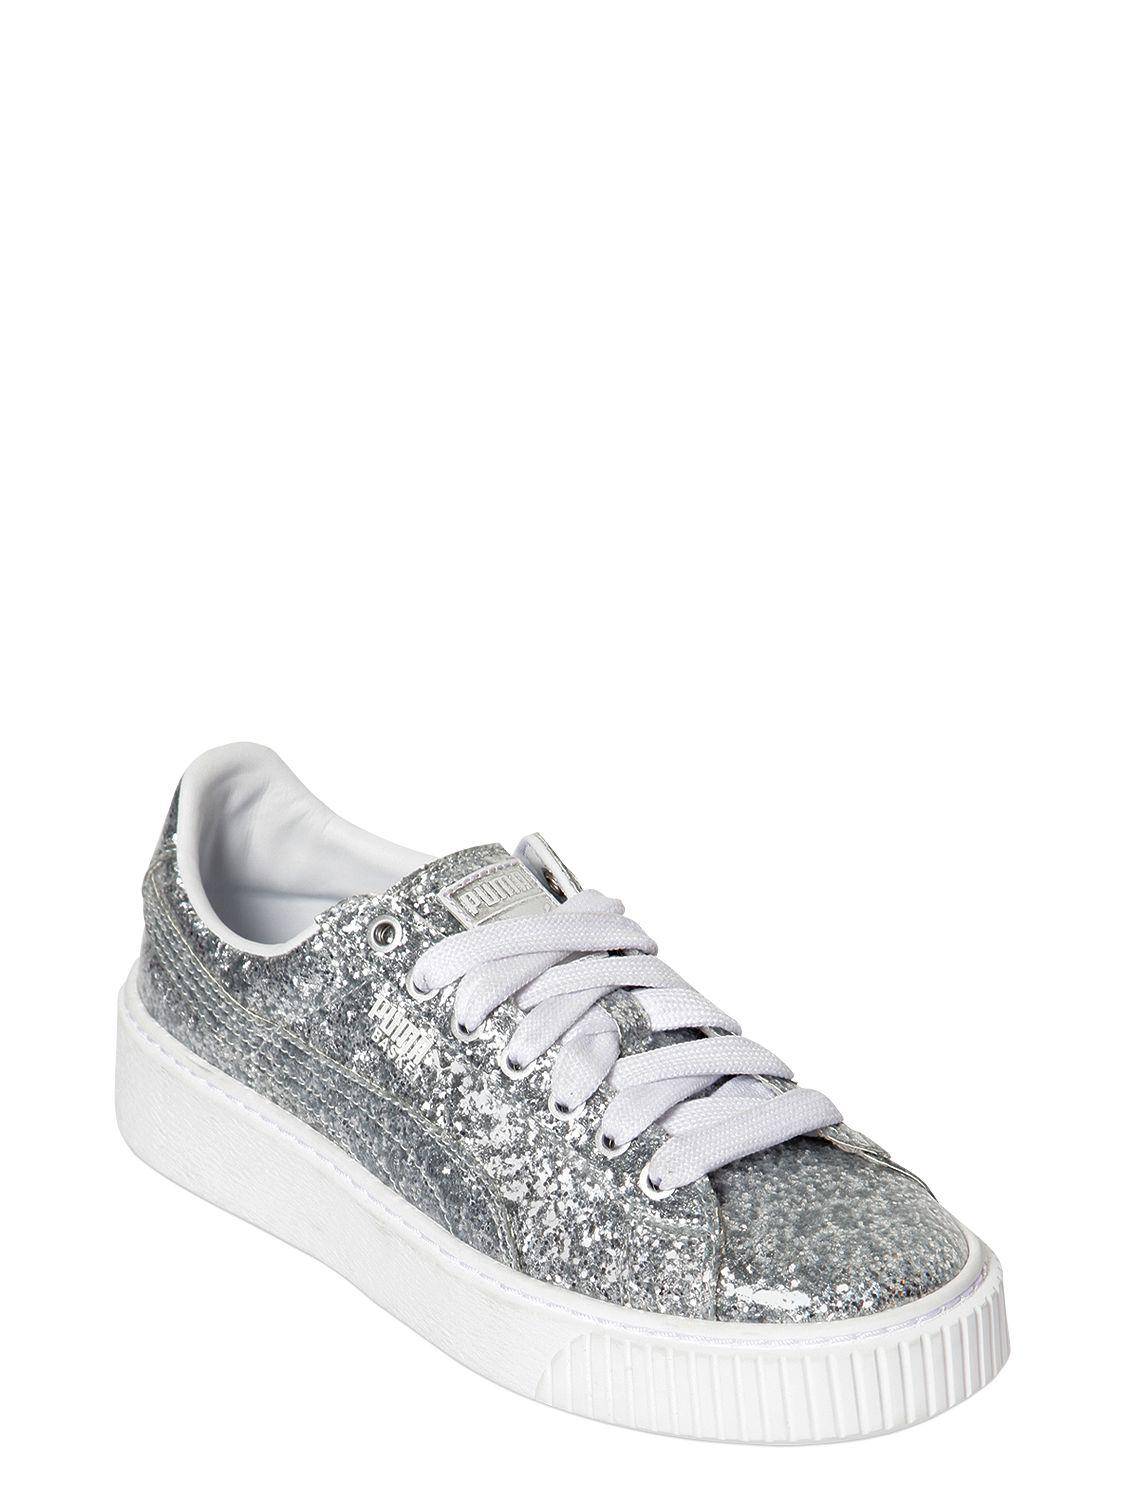 932d45ea4b76a8 Puma select Basket Platform Glitter Trainers in Metallic